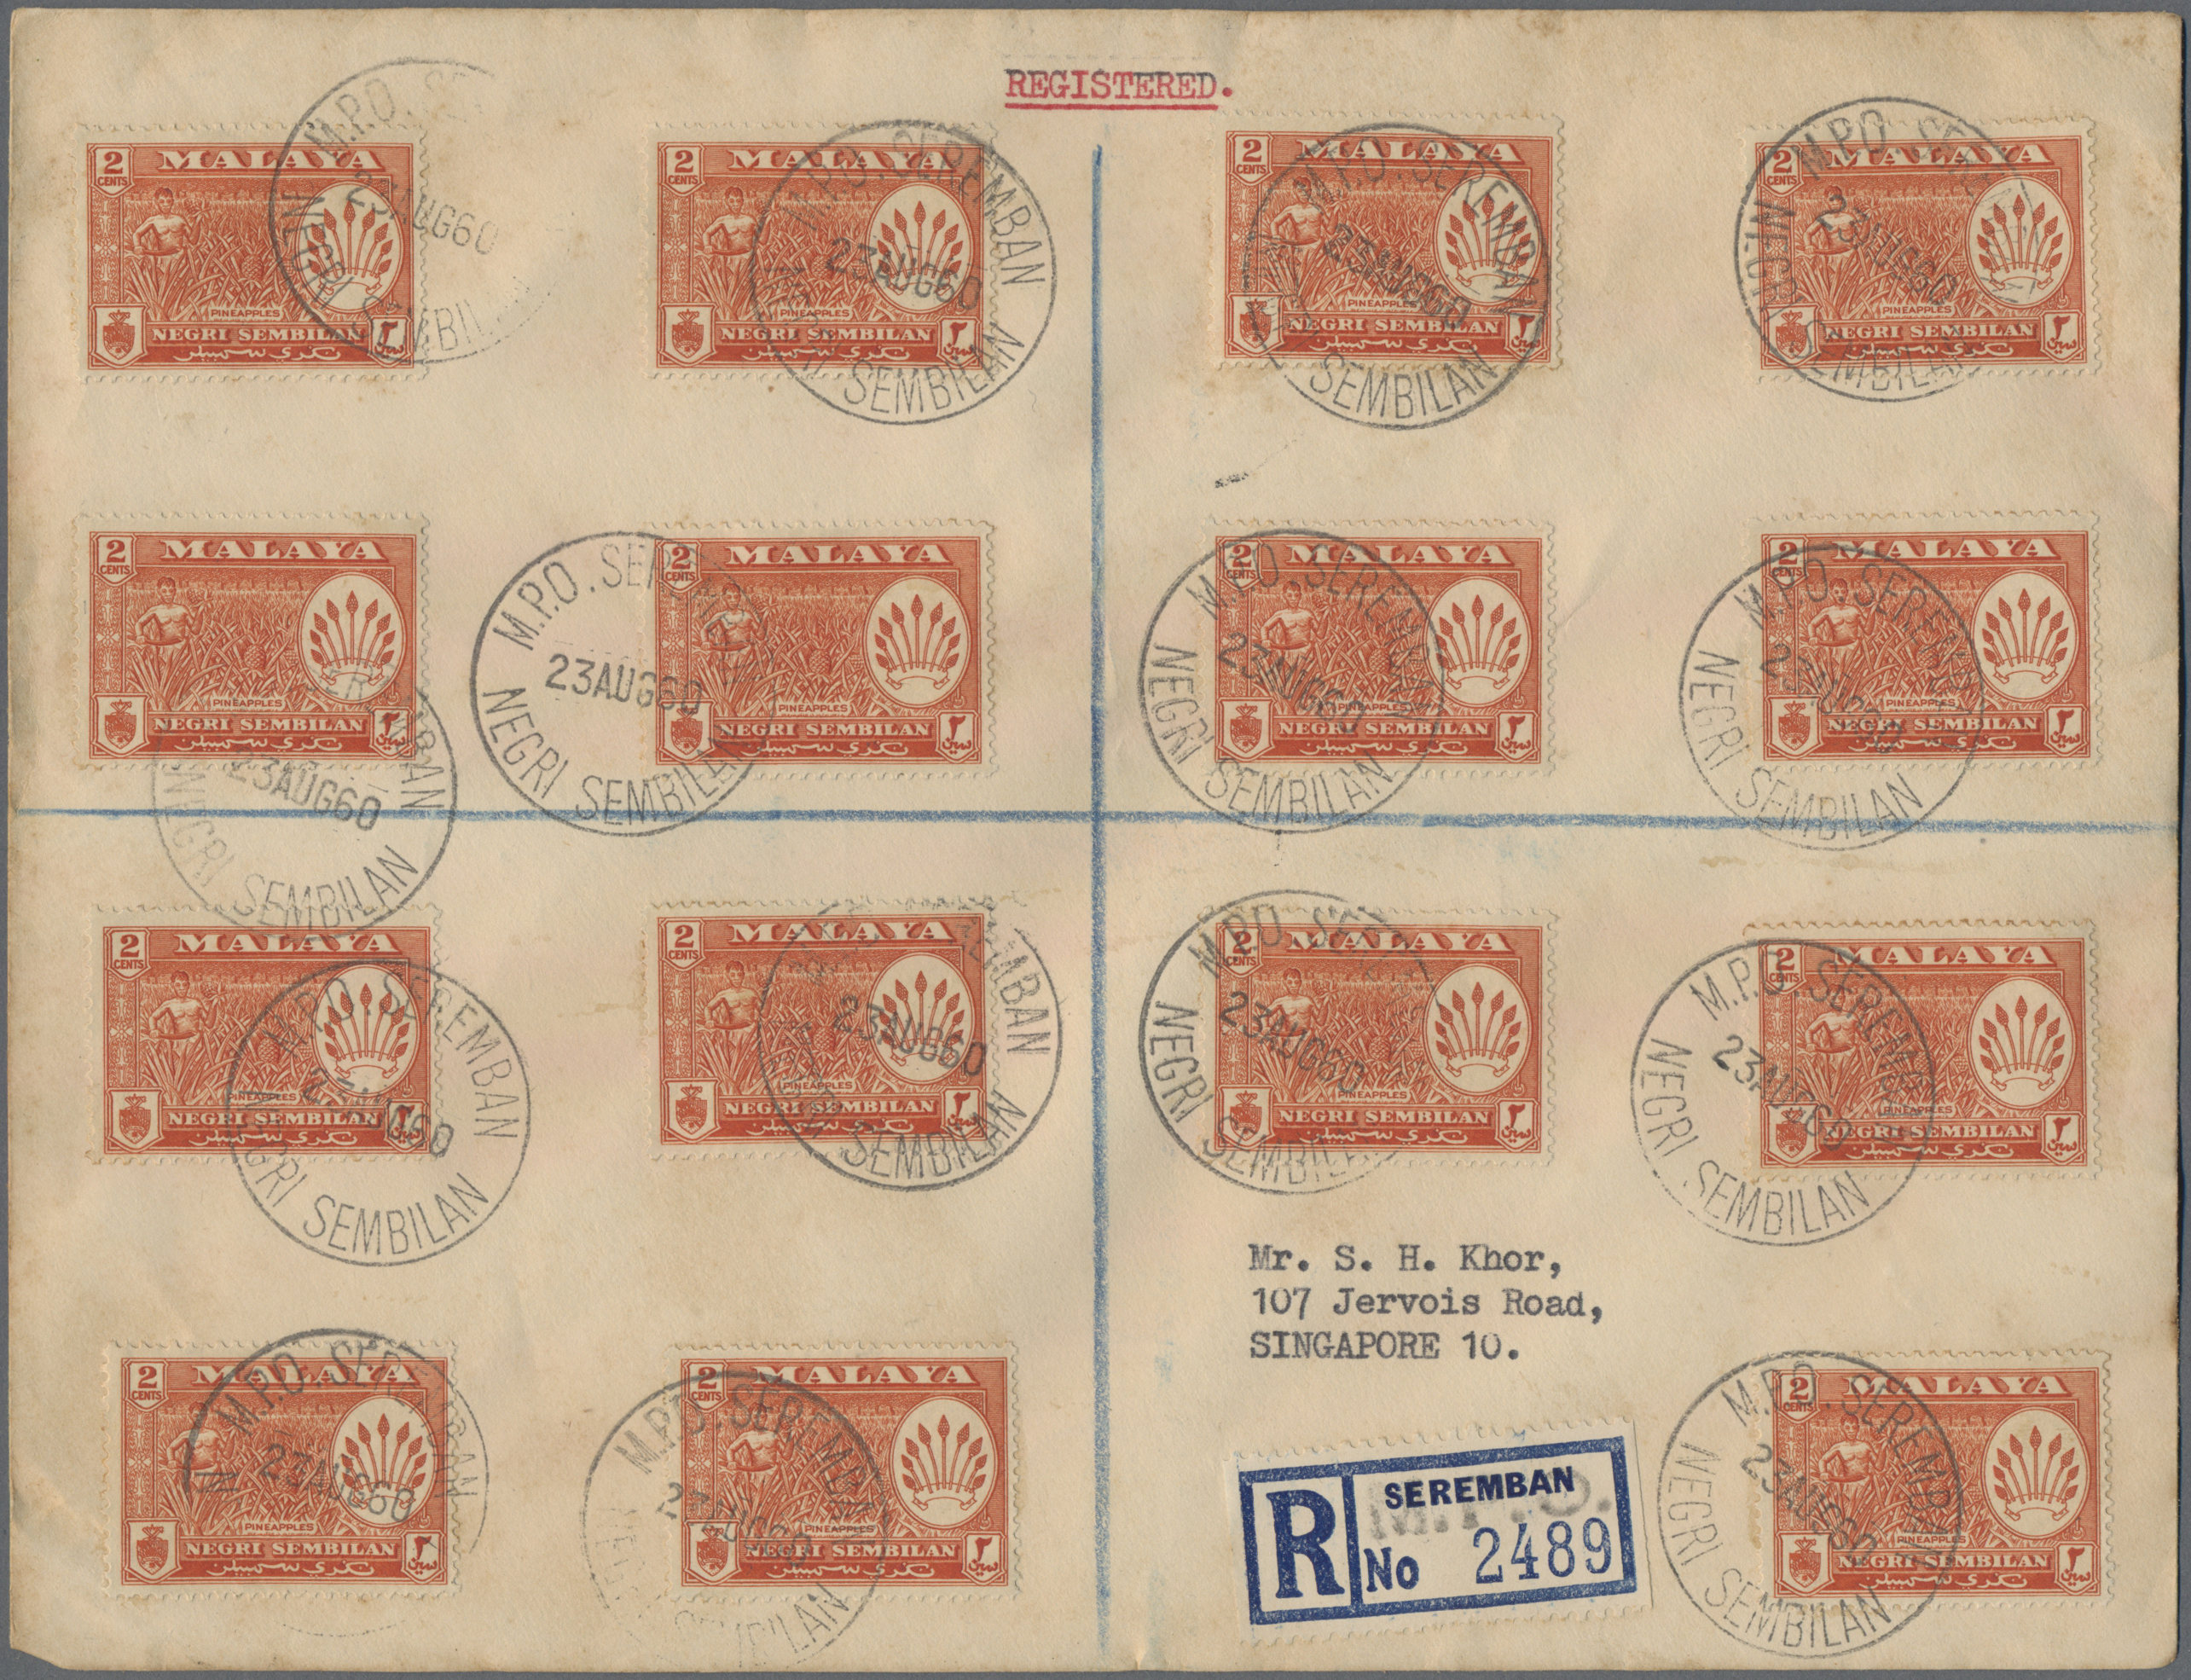 Lot 34715 - Malaiische Staaten - Negri Sembilan  -  Auktionshaus Christoph Gärtner GmbH & Co. KG Sale #44 Collections Germany